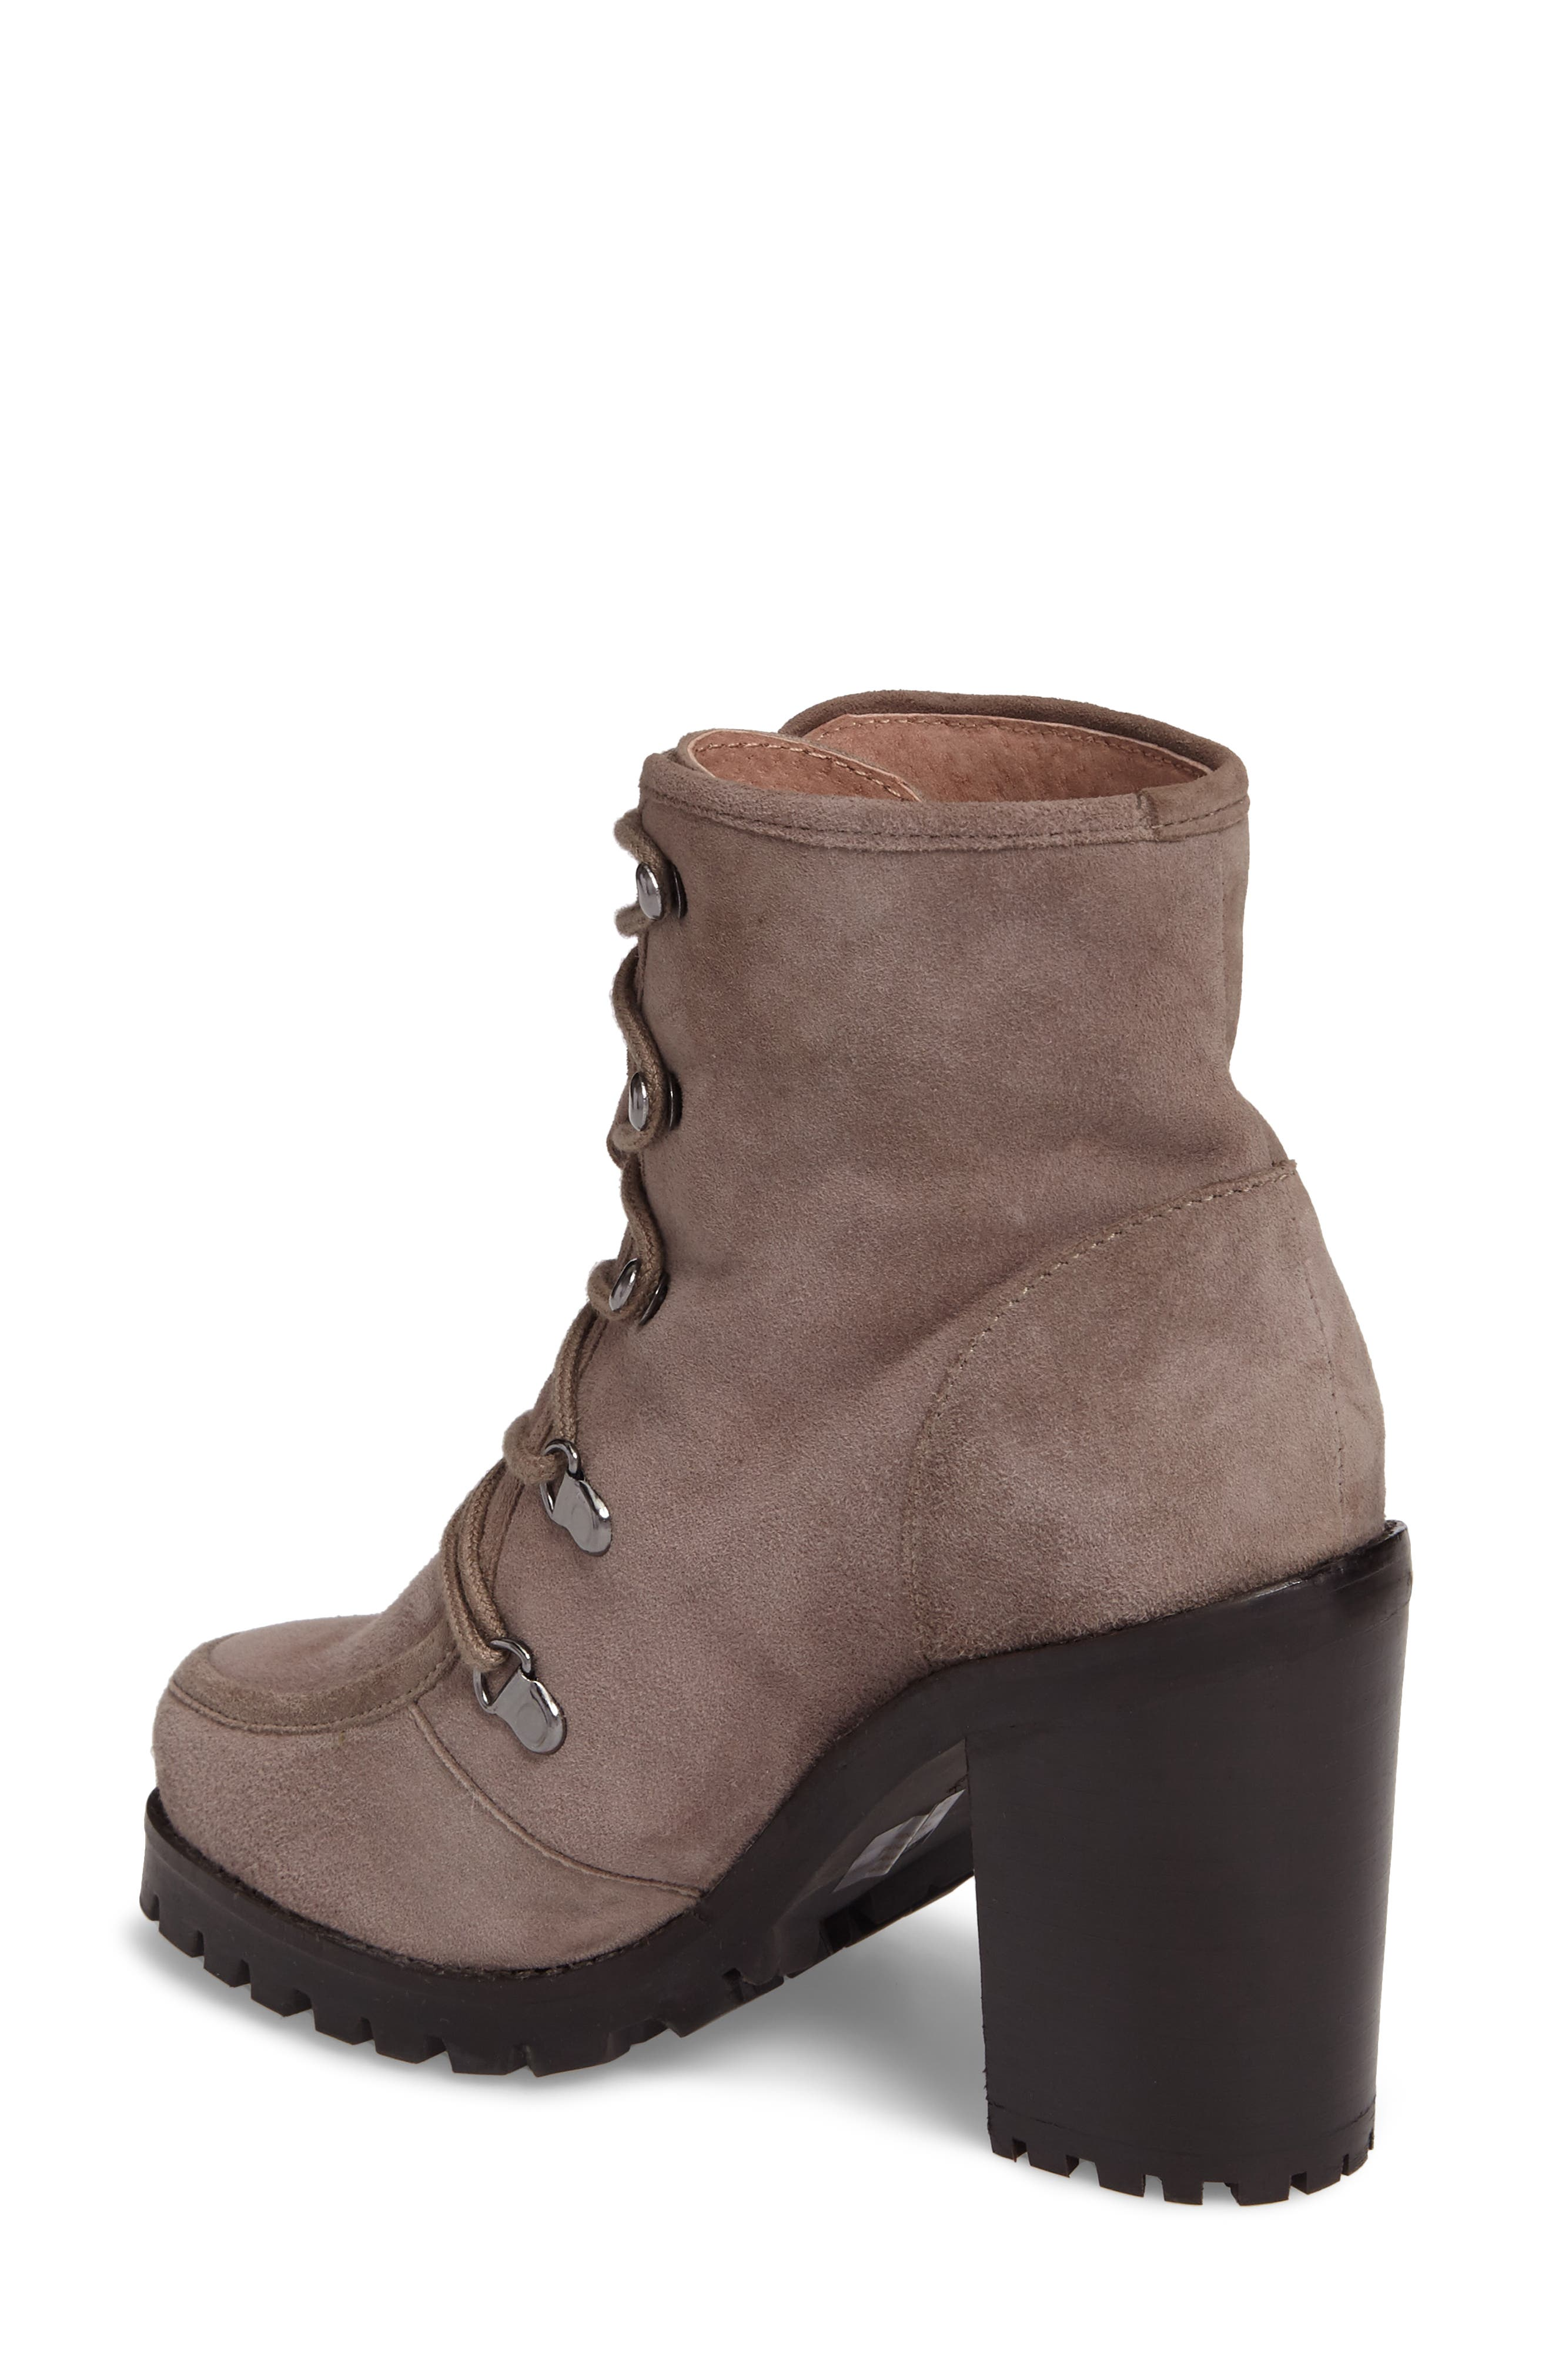 Theater Lace-Up Bootie,                             Alternate thumbnail 2, color,                             Taupe Suede